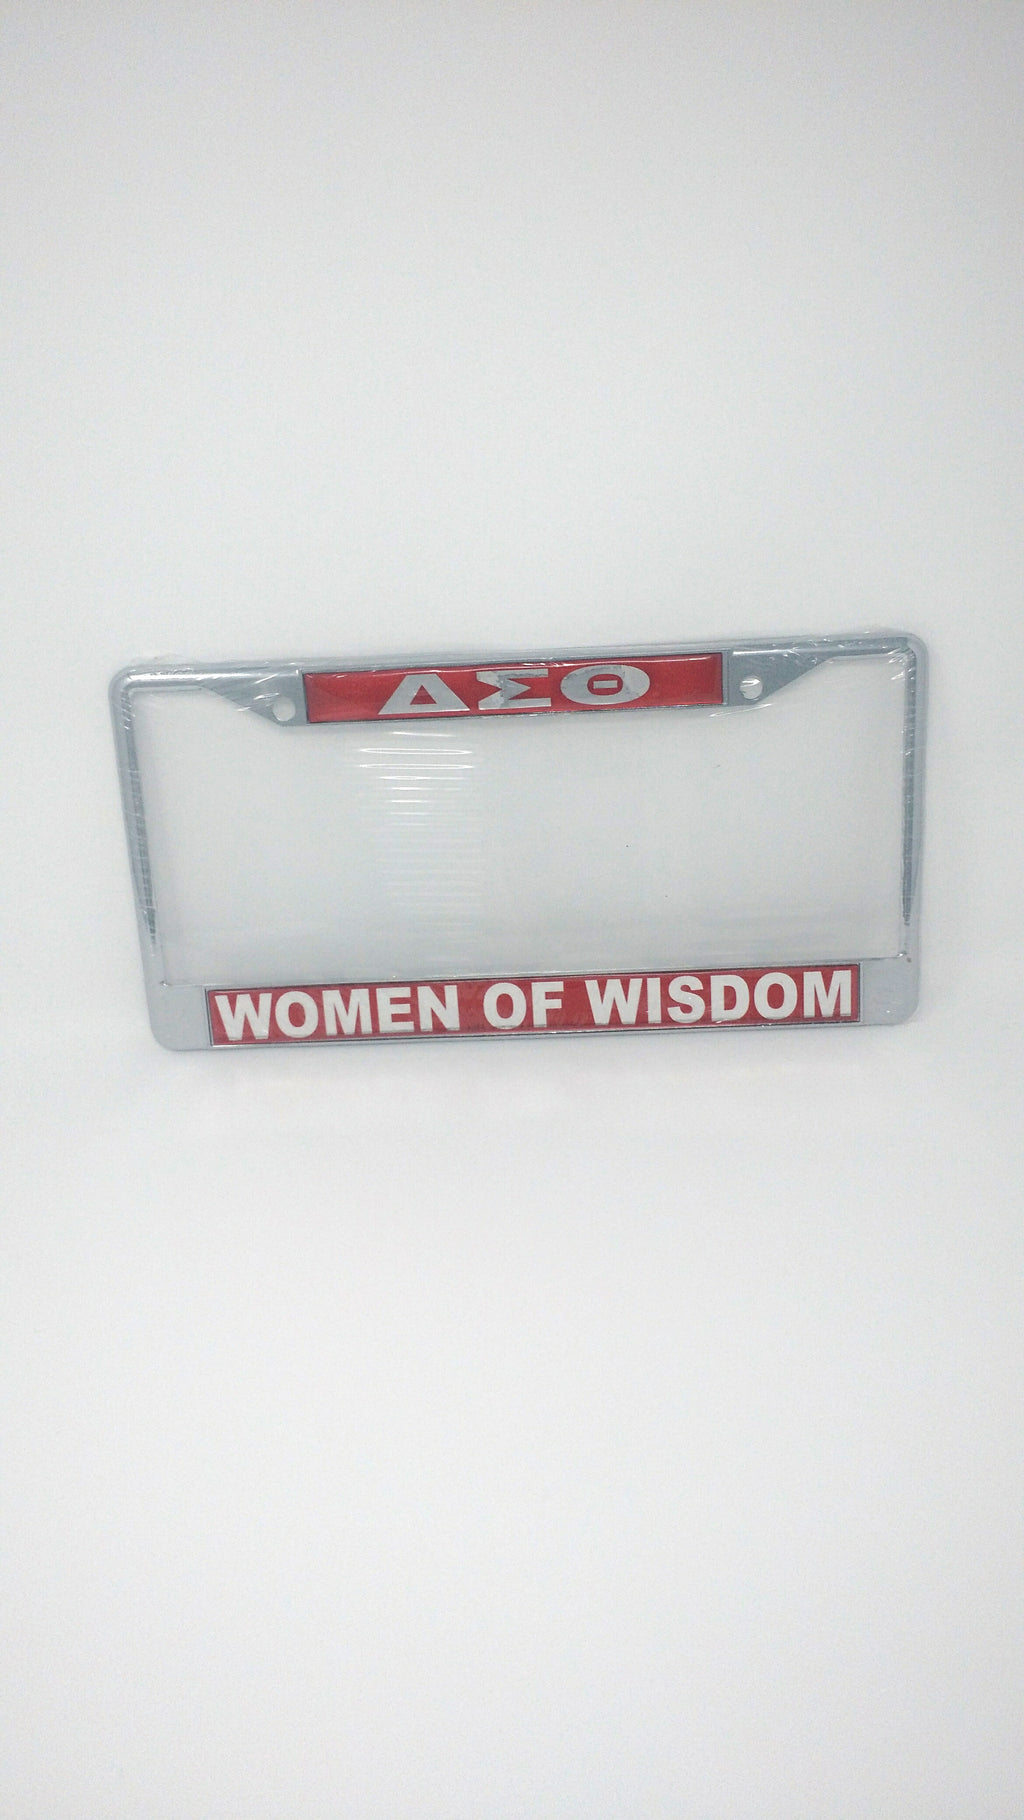 Delta Sigma Theta Mirror License Plate Frame – Women of Wisdom